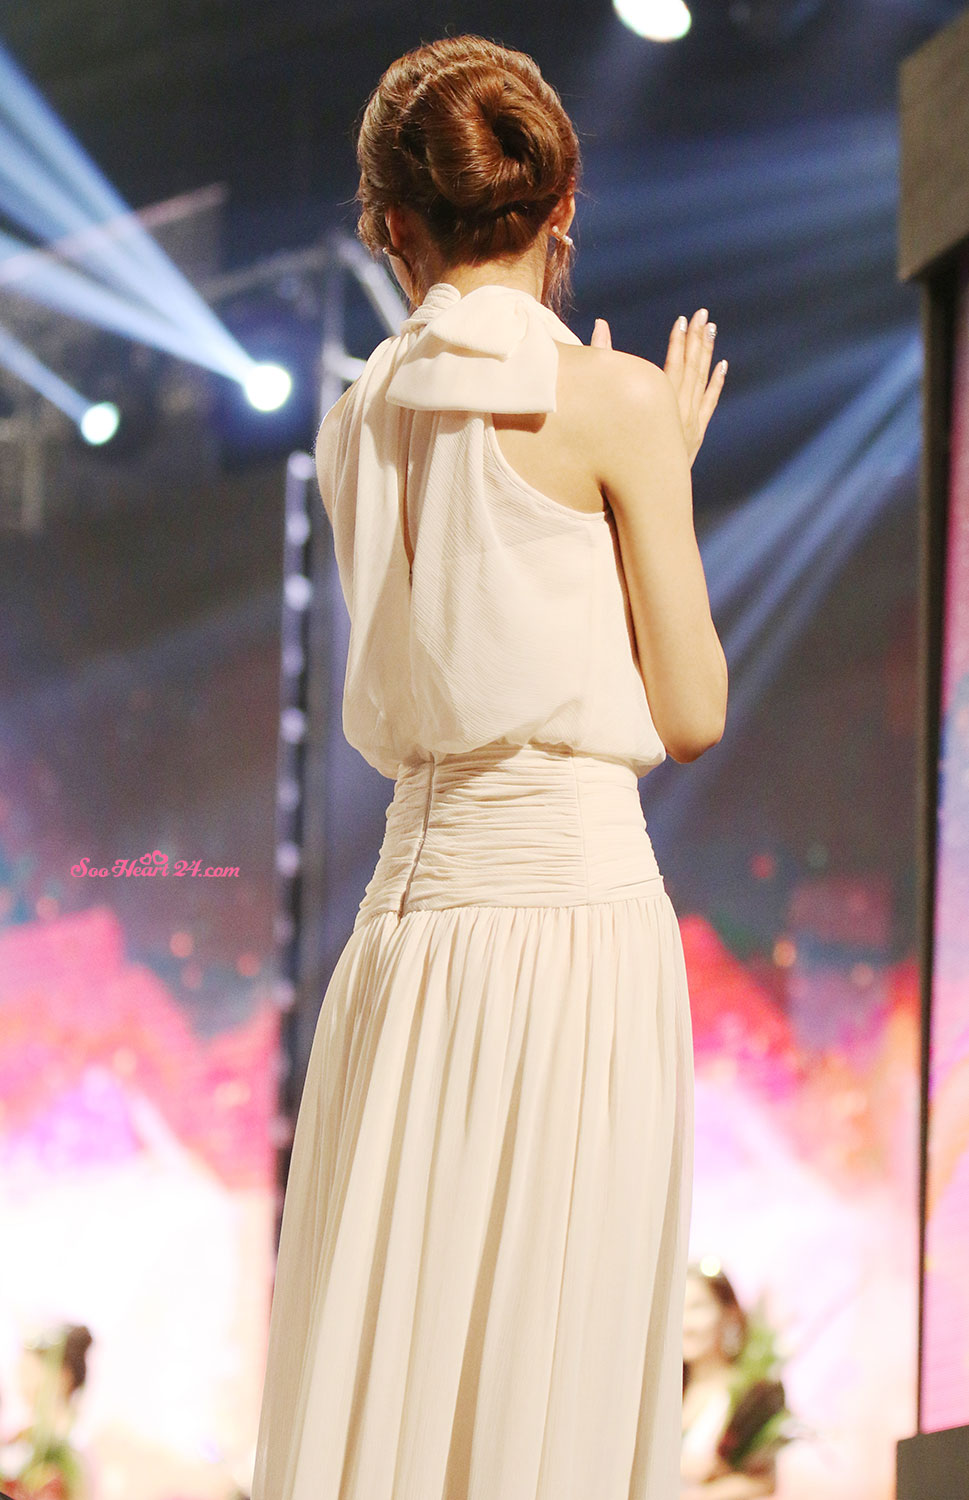 MC Sooyoung @ Miss Korea 2014